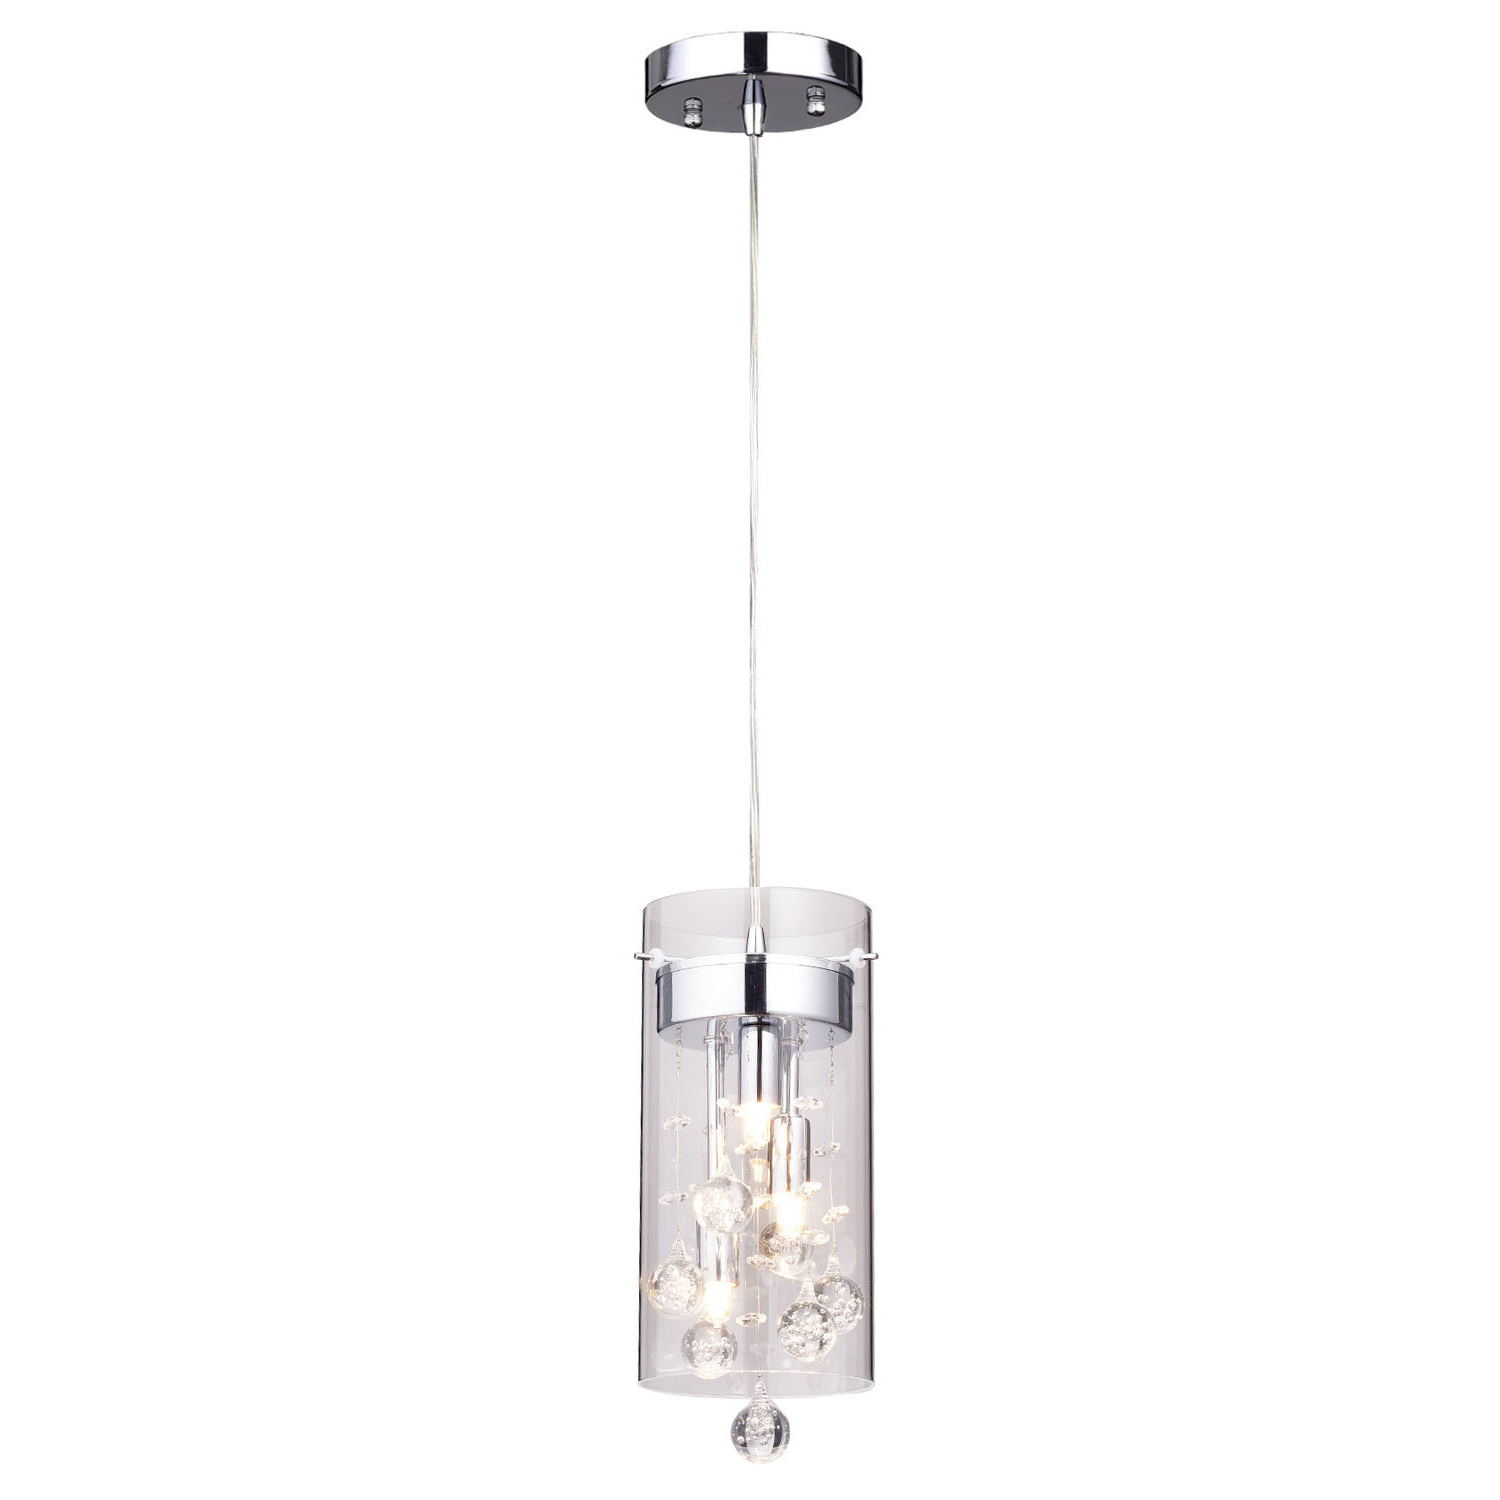 "Kraker 1 Light Single Cylinder Pendants Within Recent Crystal Mini (less Than 10"" Wide) Pendant Lighting You'll (Gallery 9 of 20)"